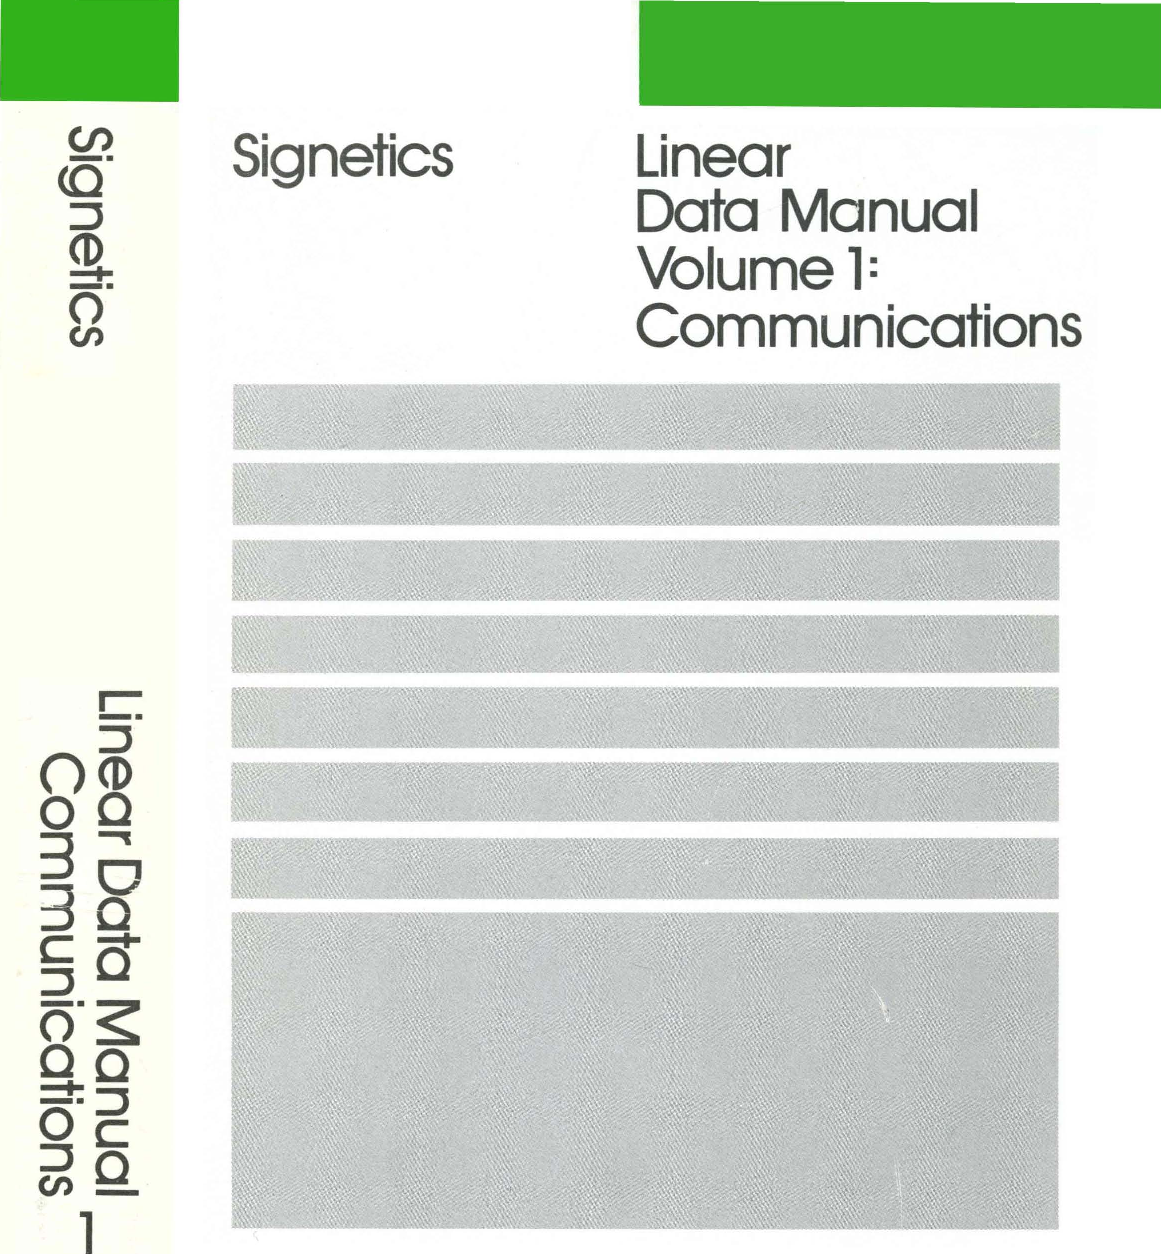 1988 Signetics Linear Data Manual Vol 1 Communications Lm358 358 Ic Dual Operational Amplifiers Dip8 Integrated Circuit